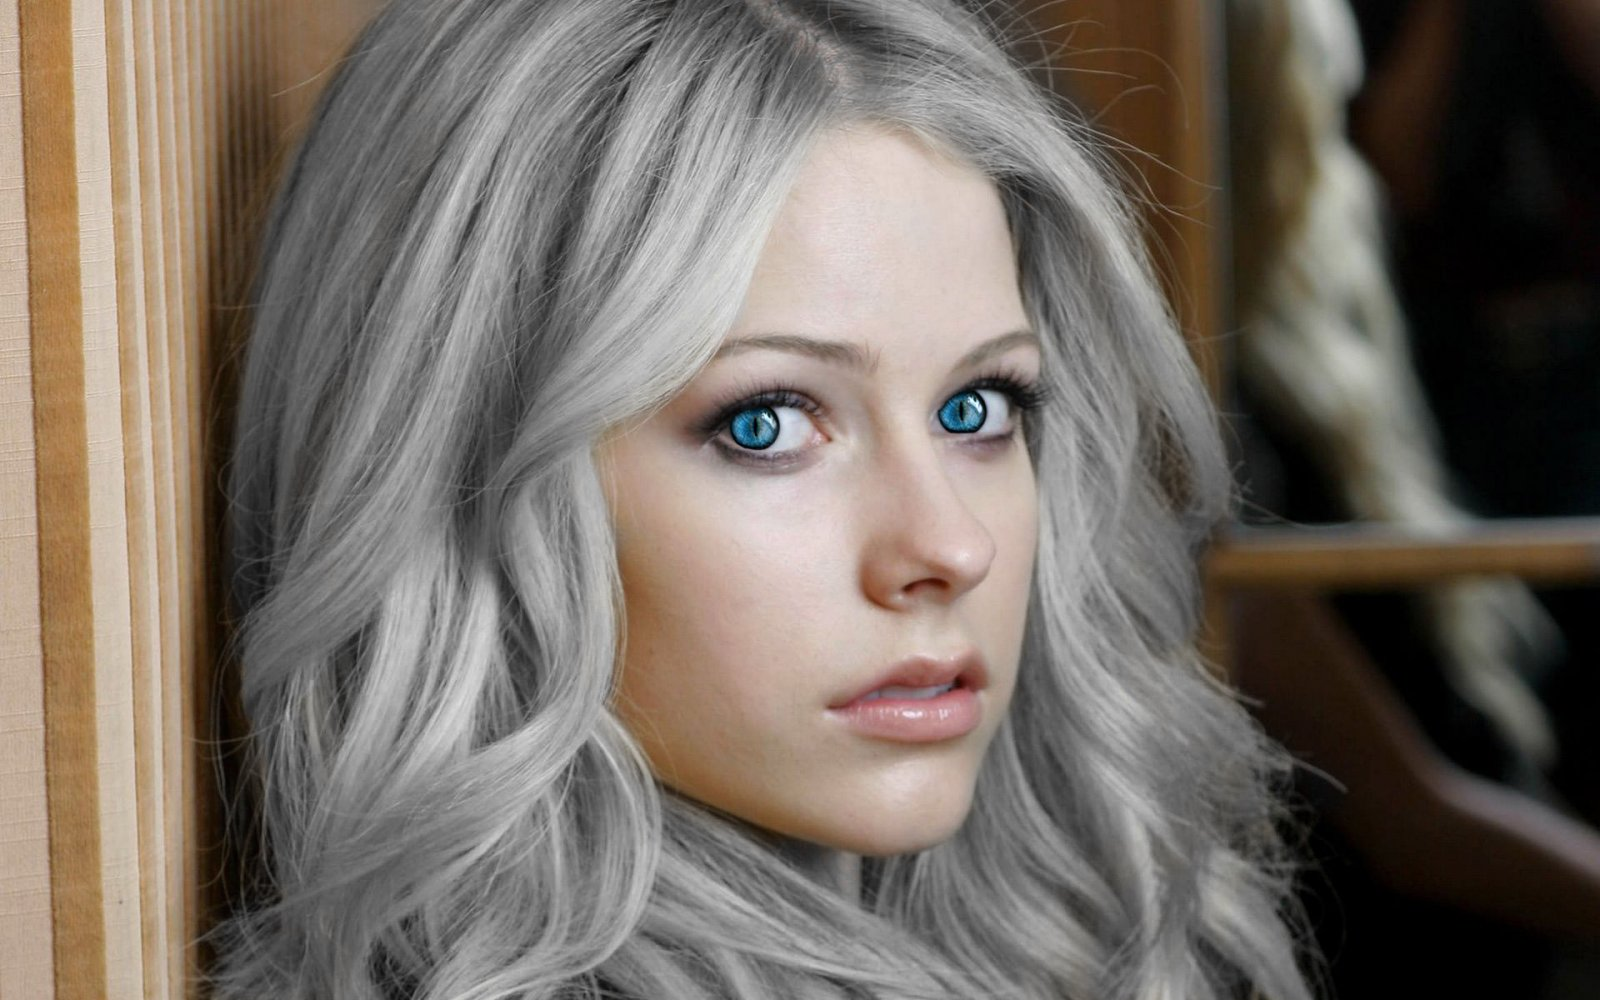 avril_lavigne_hd_image-Recovered.jpg